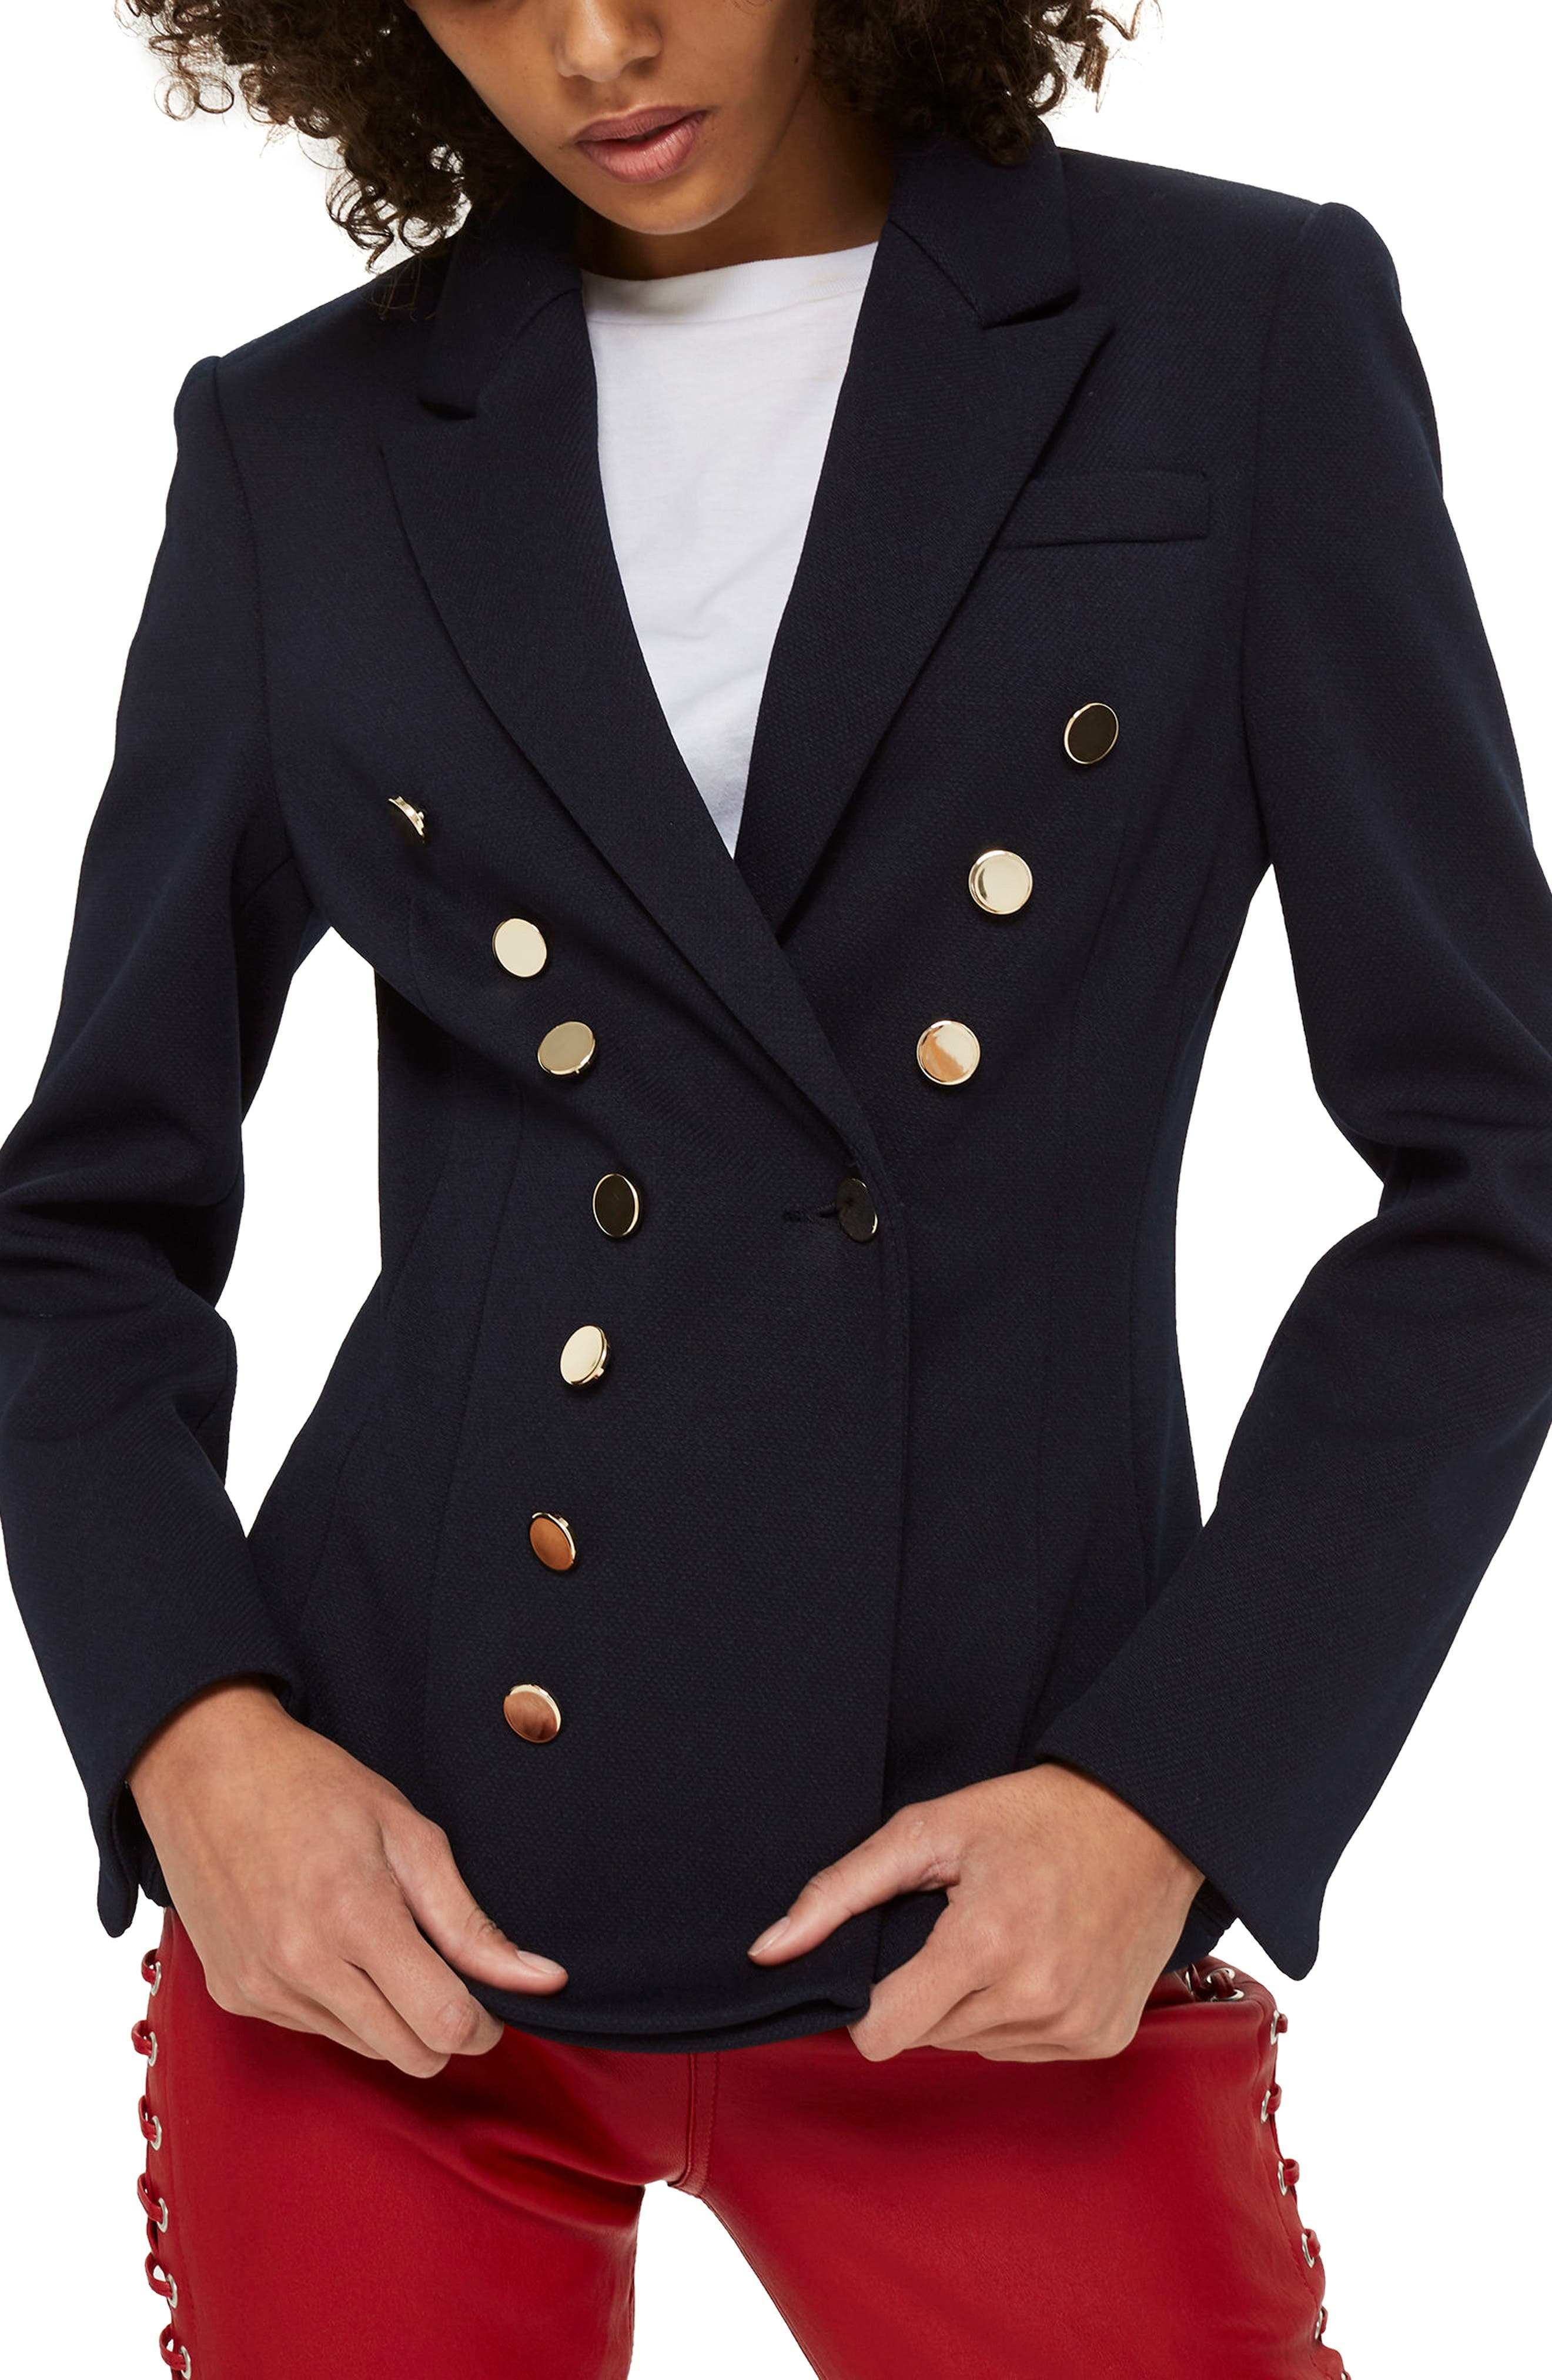 Golden Button Double Breasted Jacket,                         Main,                         color, Navy Blue